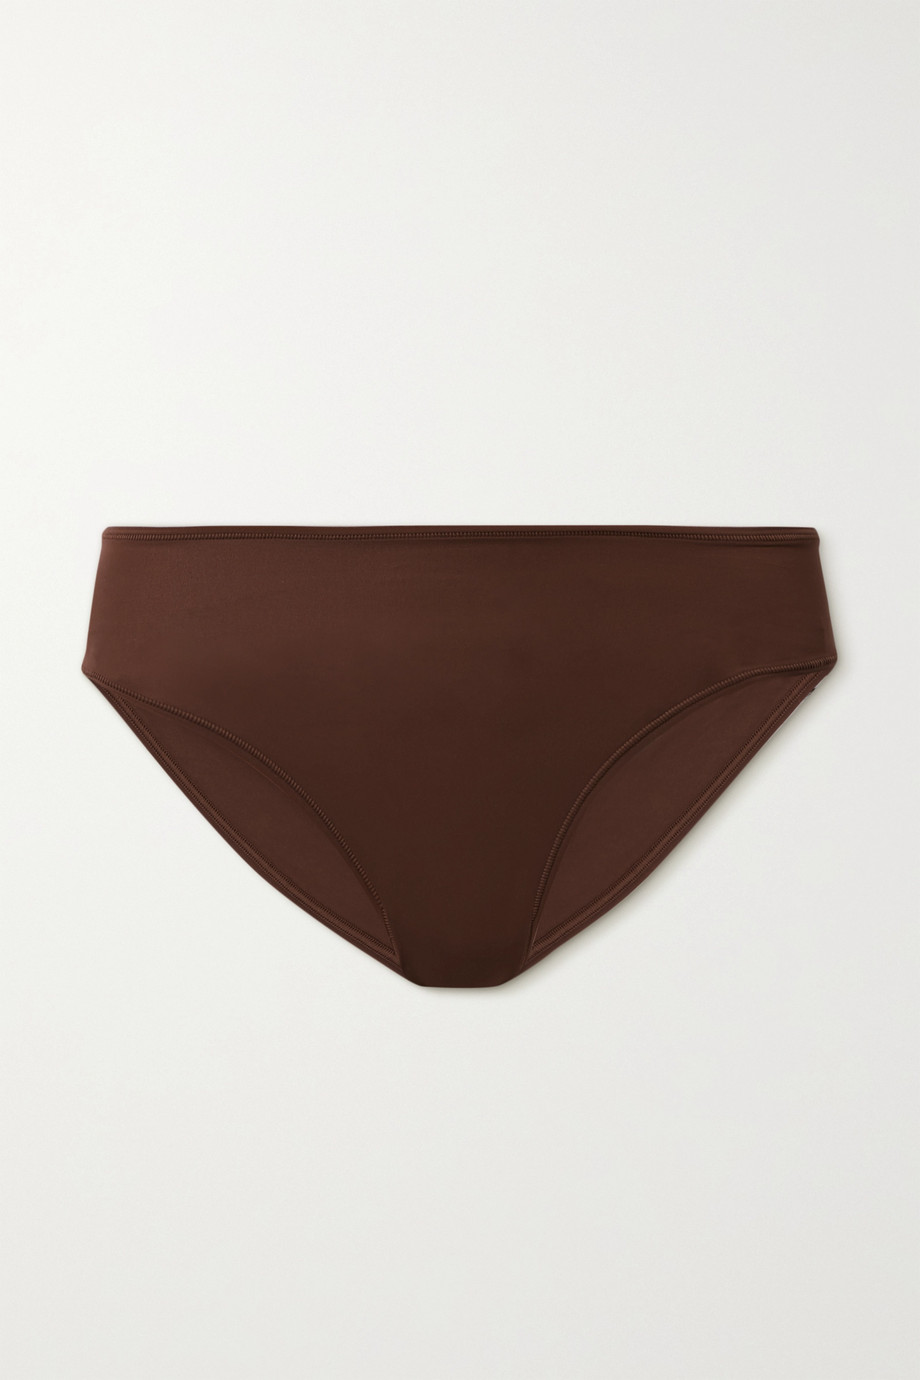 SKIMS Fits Everybody cheeky briefs - Cocoa